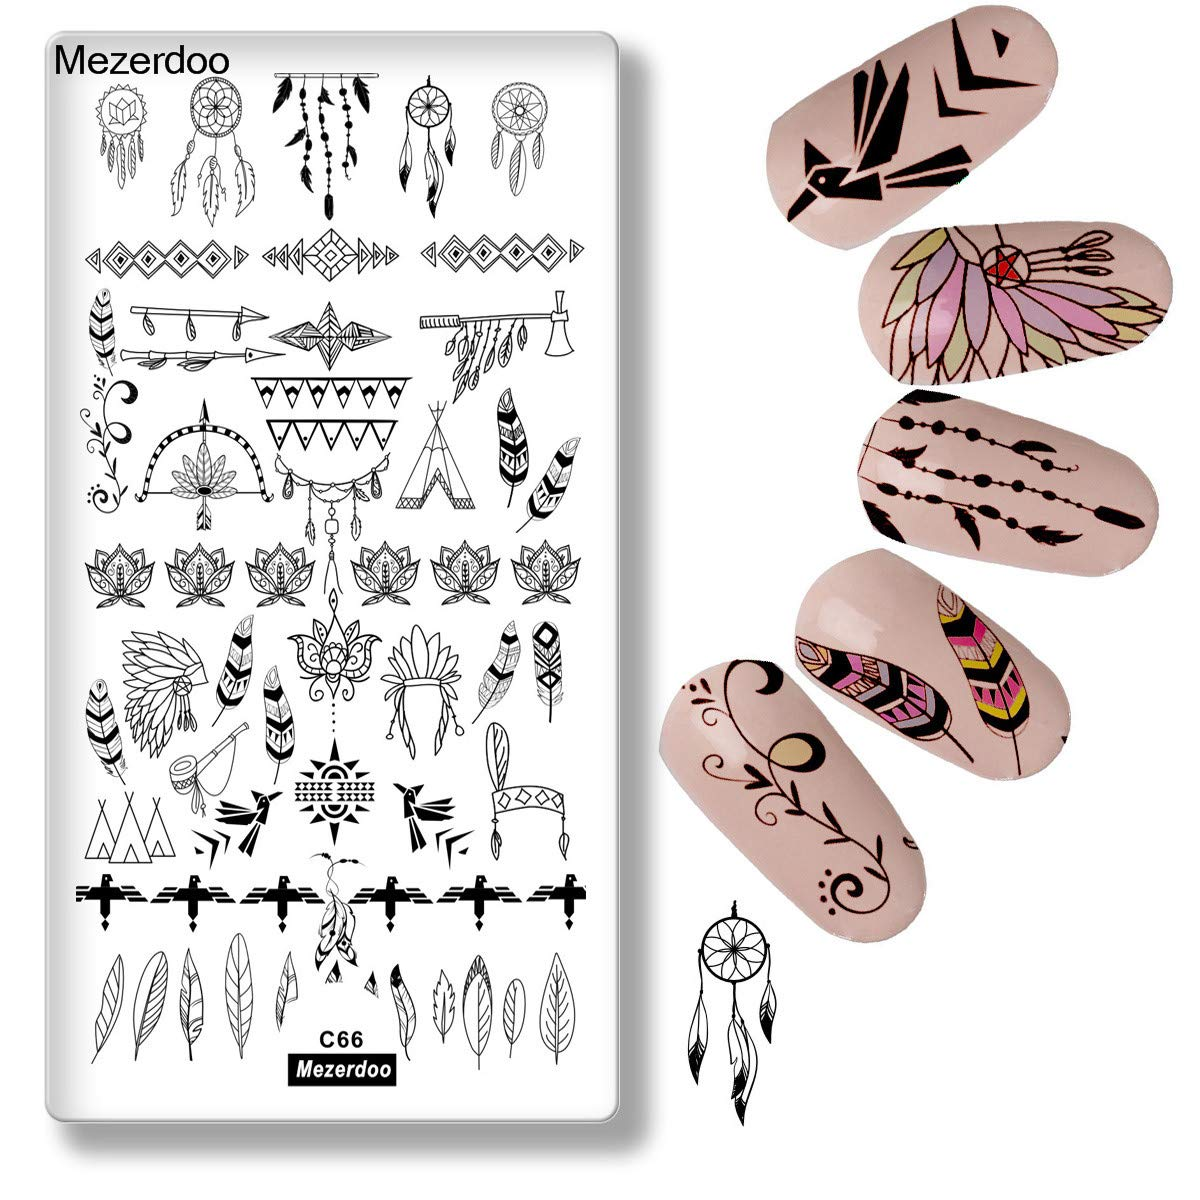 Mezerdoo 1Pcs Exotic Dreamcatcher Nail Art Stamp Plate Feather Collection Stamping Image Plates Manicure Nail Designs DIY Metal Templates Deco